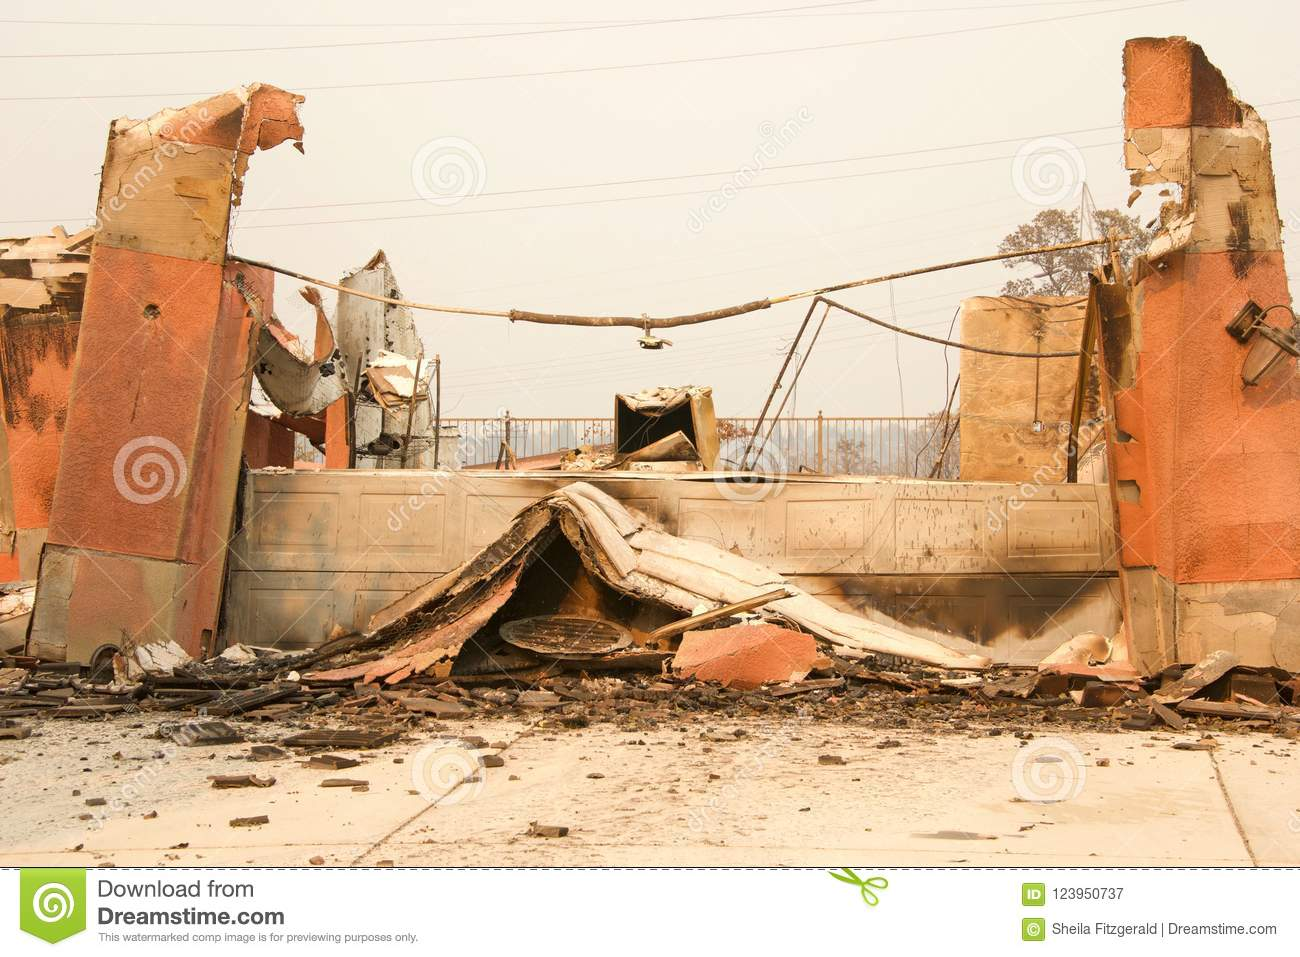 Garage Section Of House Burned In Carr Fire In Redding California Stock Image Image Of Burnt Building 123950737